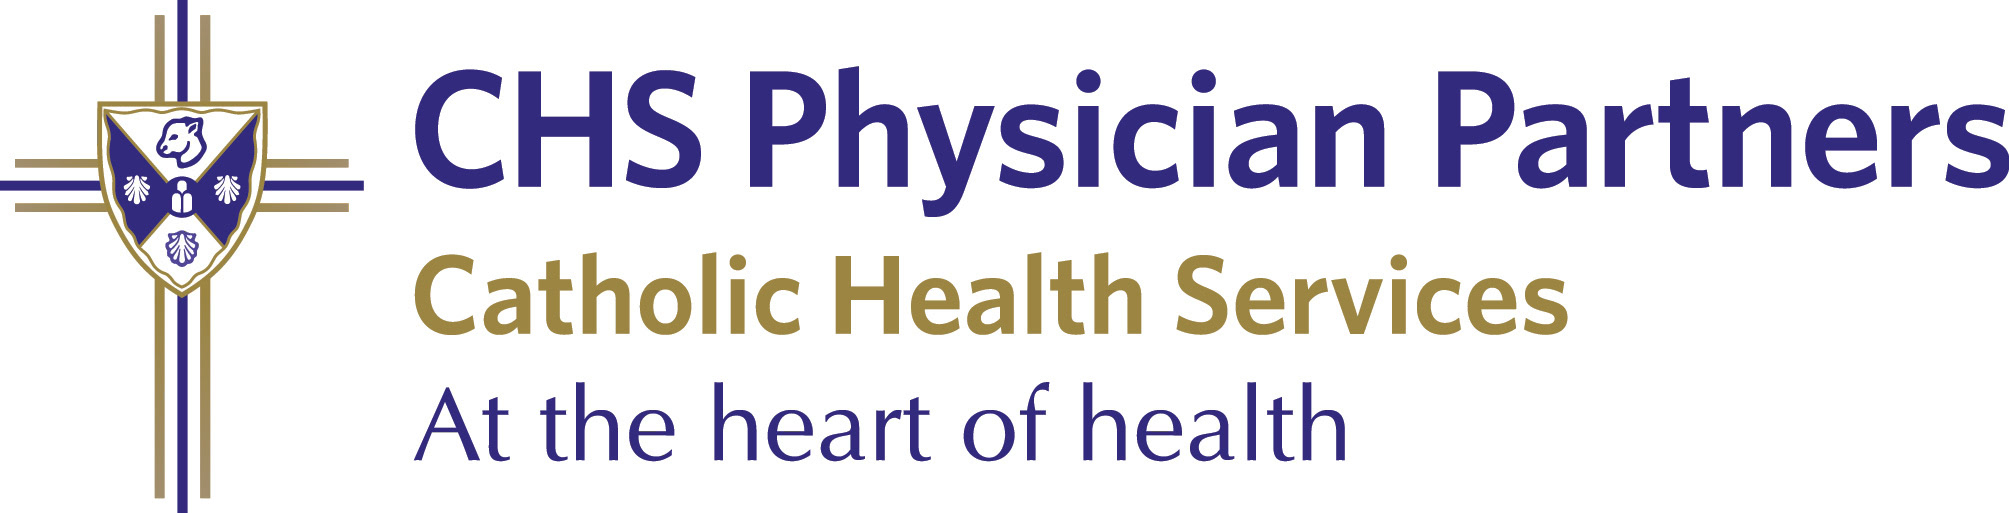 CHS Physician Partners Catholic Health Services